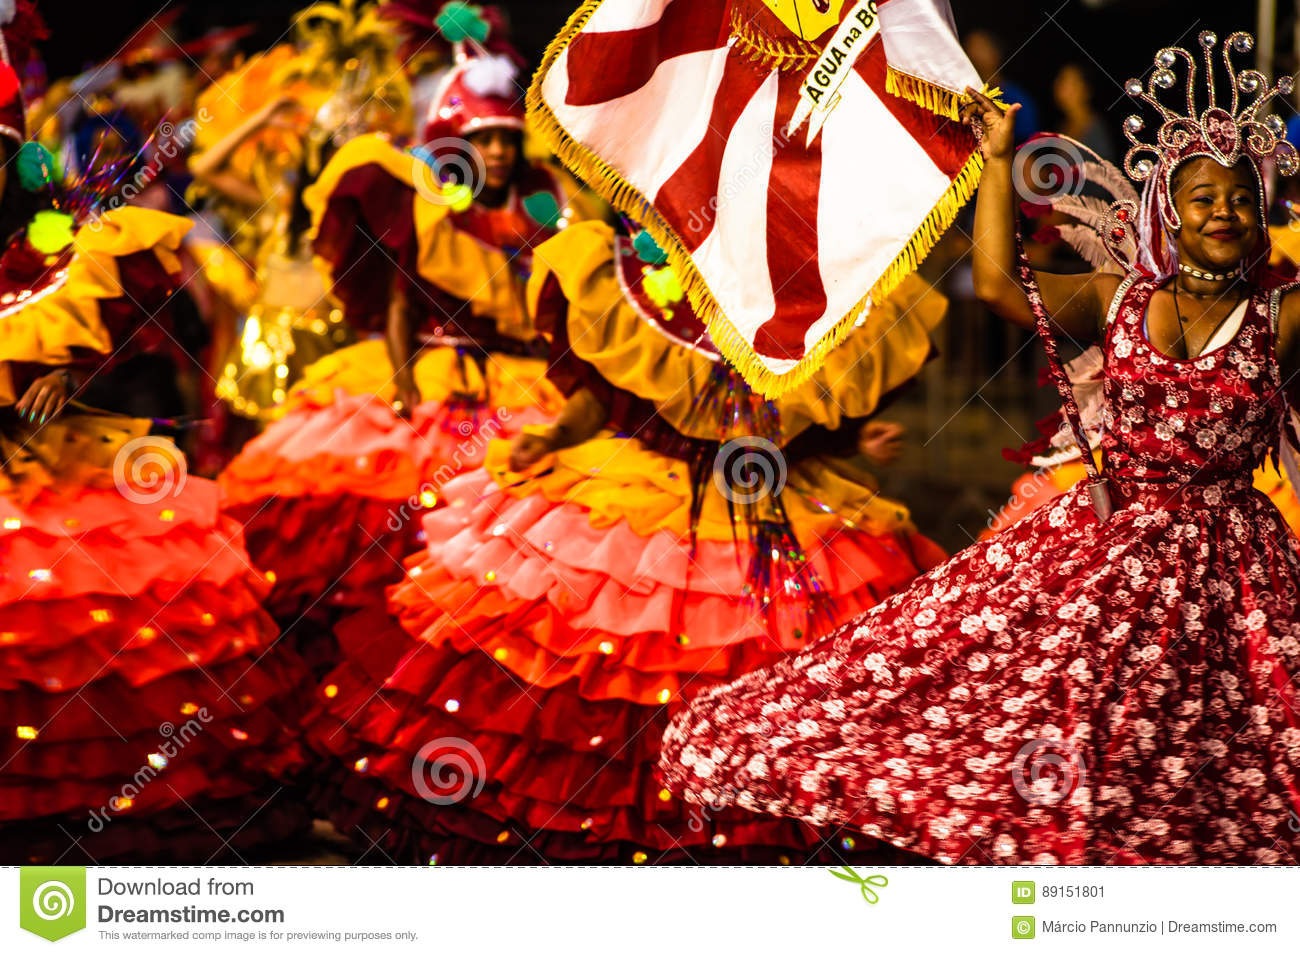 Brazilian Carnival. Parade of the Ita Lions samba school on the avenue in Ilhabela, Brazil, 02/28/2017. Artistic photo with select